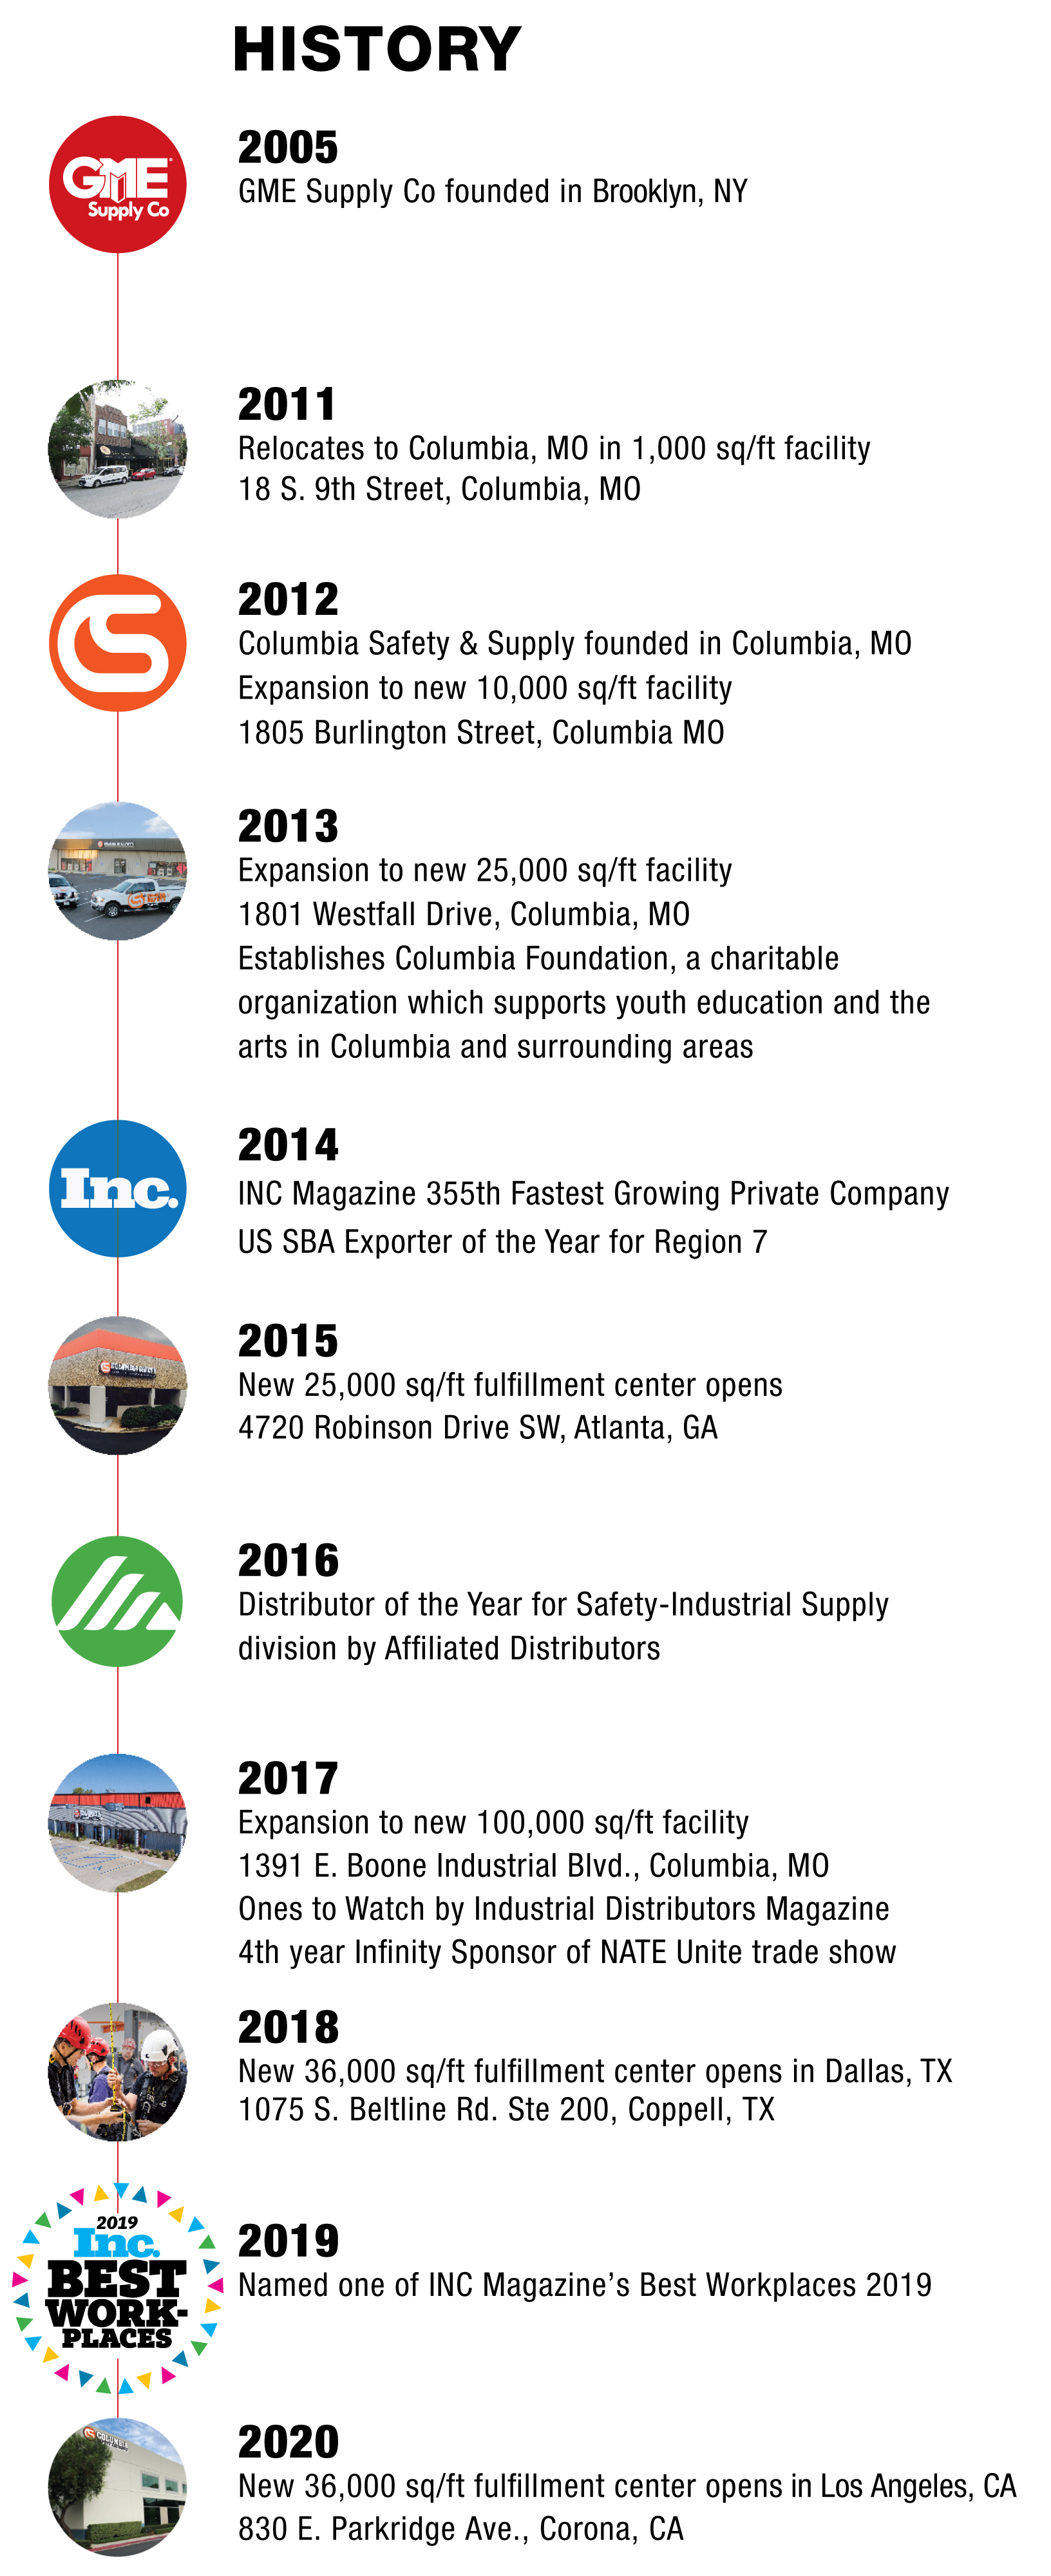 a historical timeline of GME Supply's growth